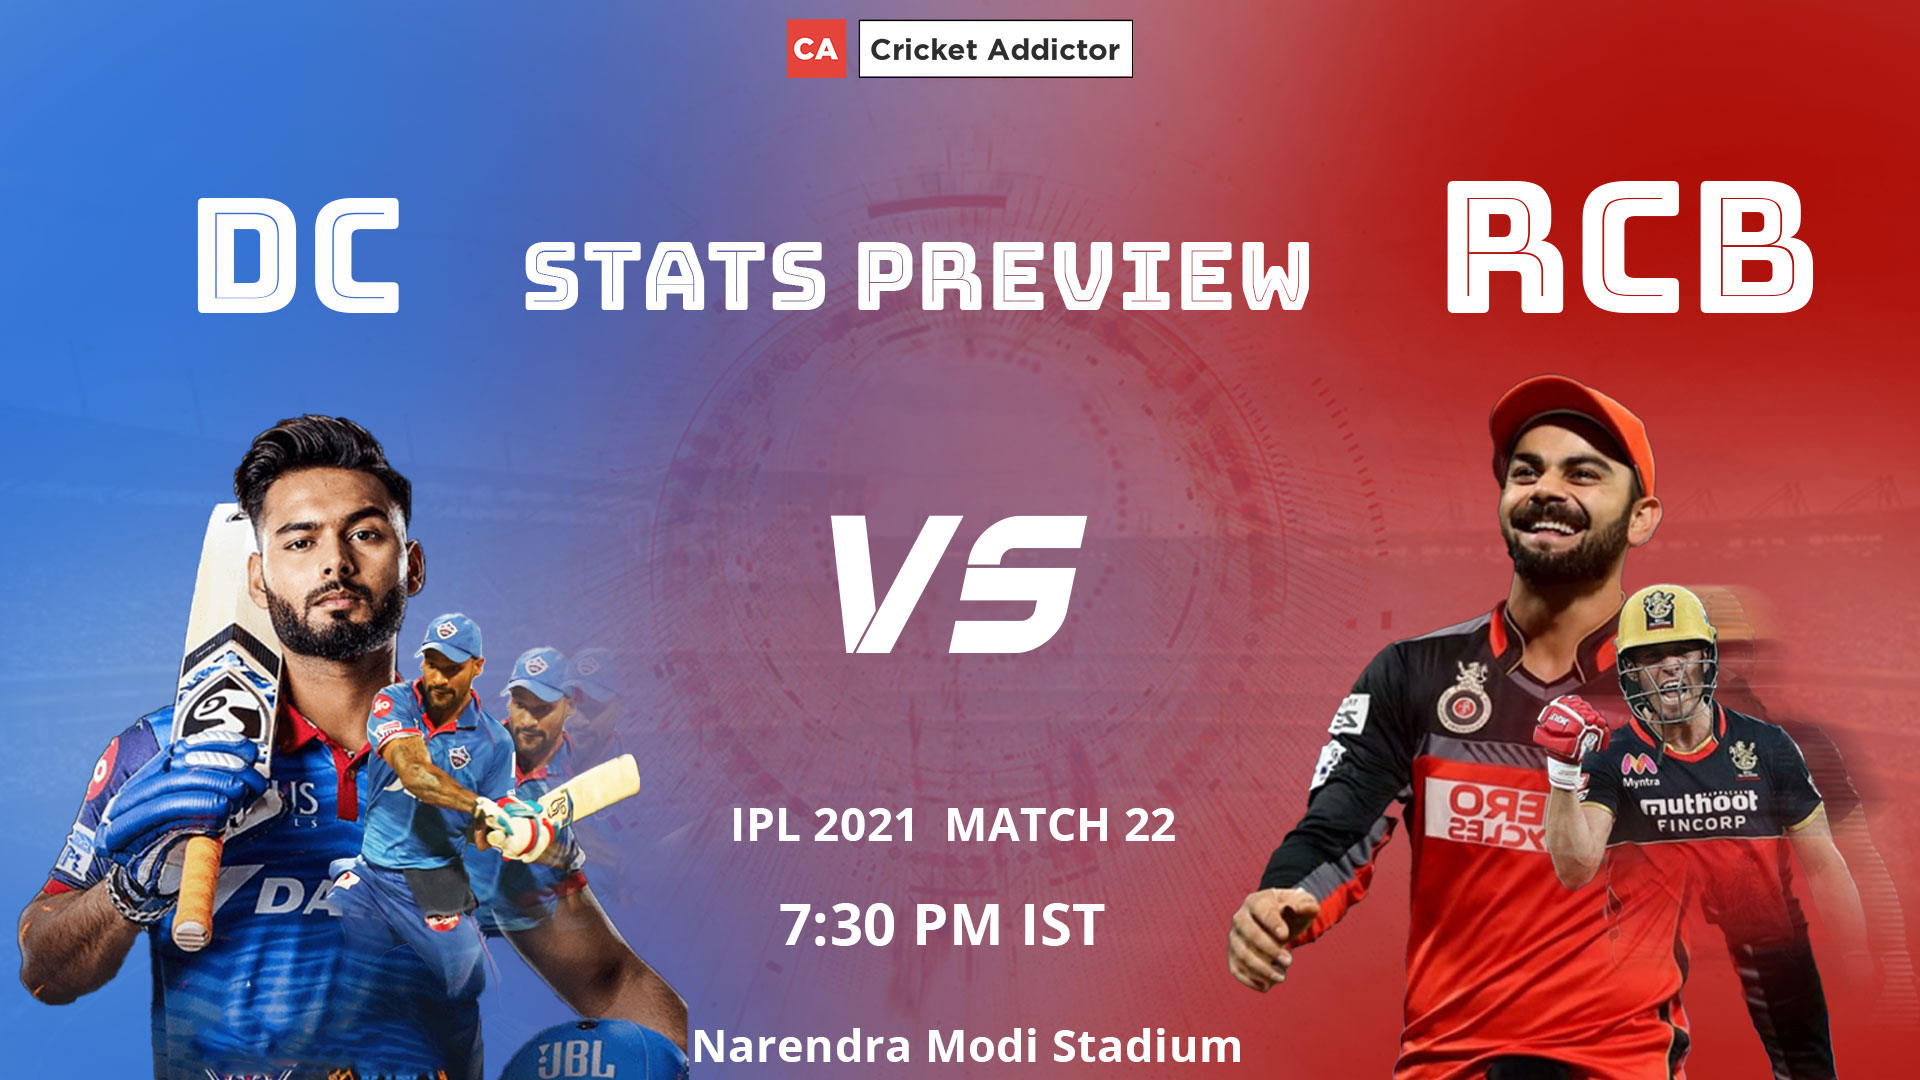 IPL 2021, Delhi Capitals, Royal Challengers Bangalore, DC vs RCB, Stats Preview